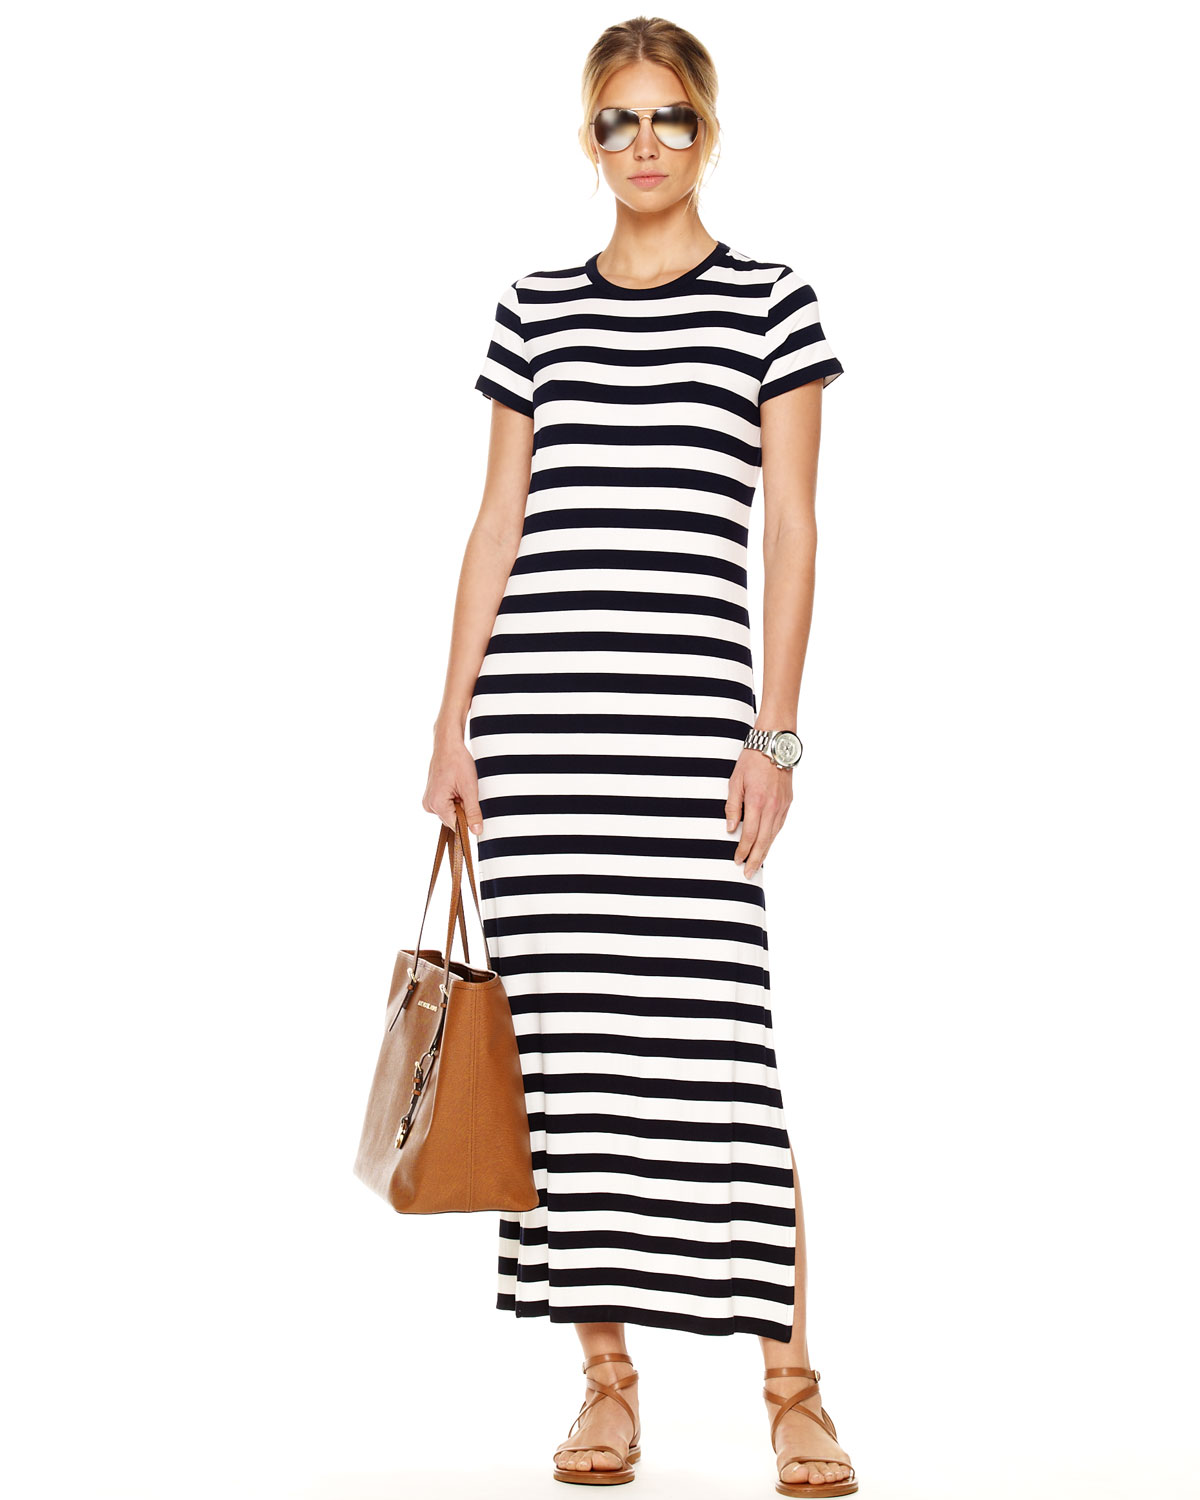 Michael kors Exclusive Striped Maxi Dress in Blue